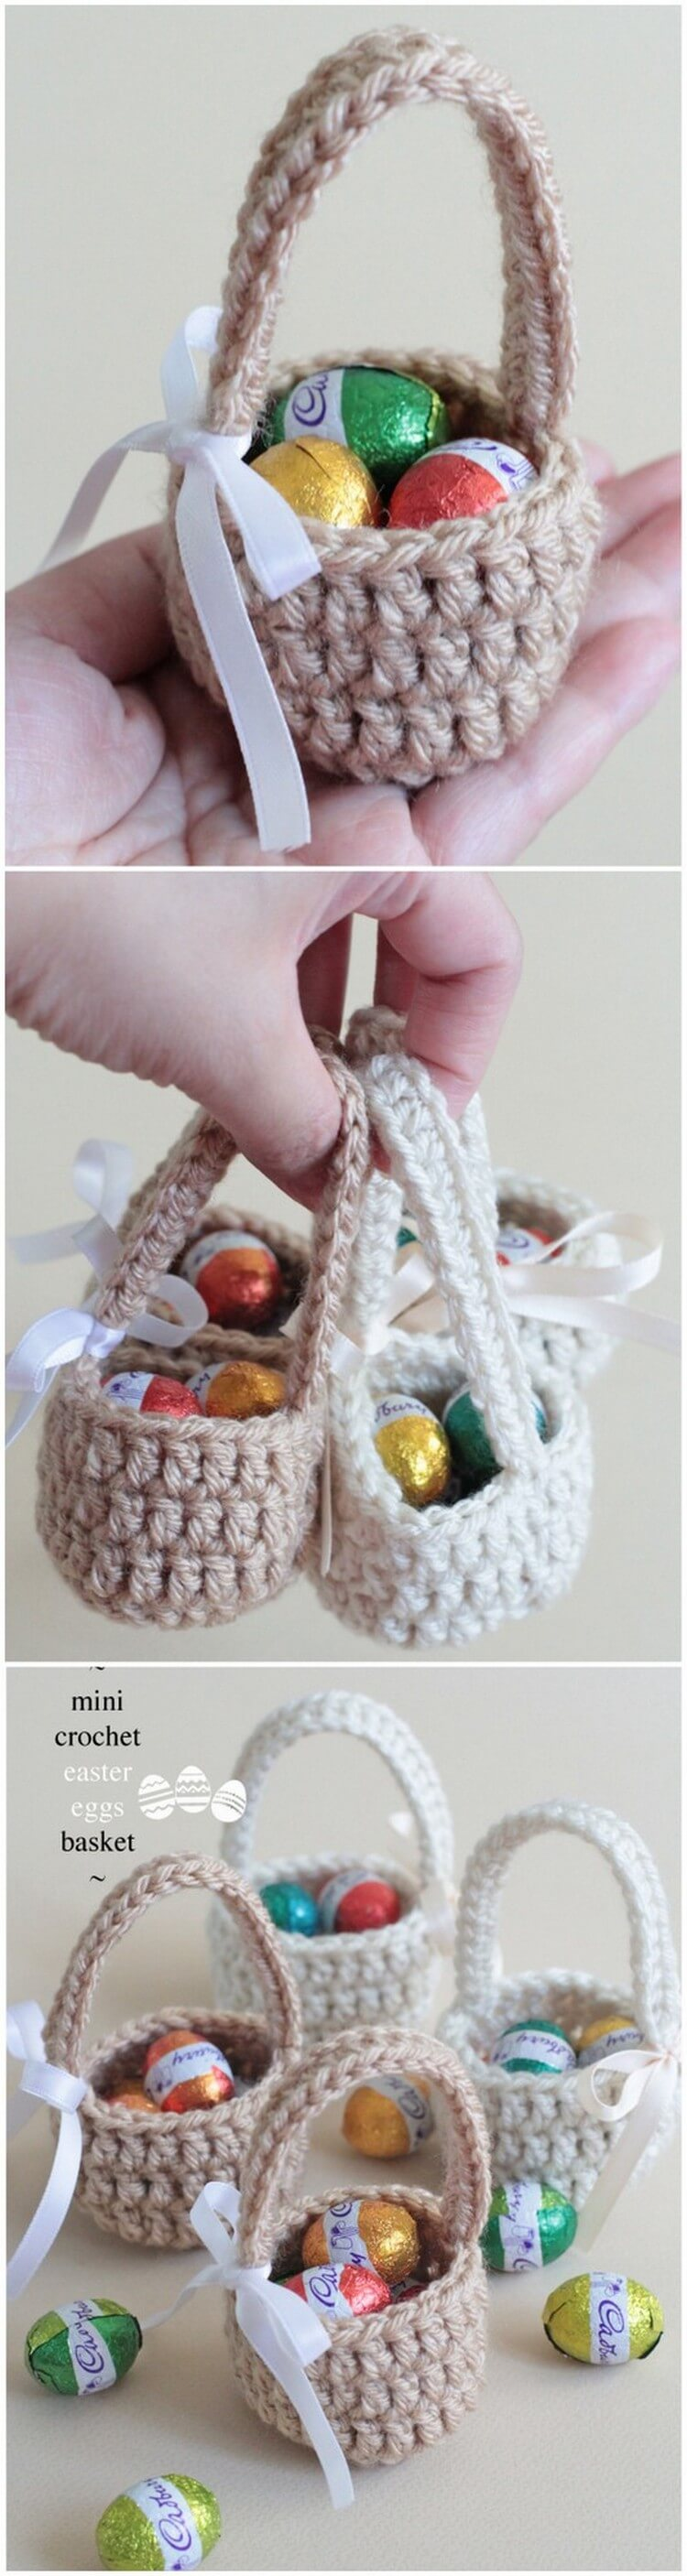 Crochet Basket Pattern (72)